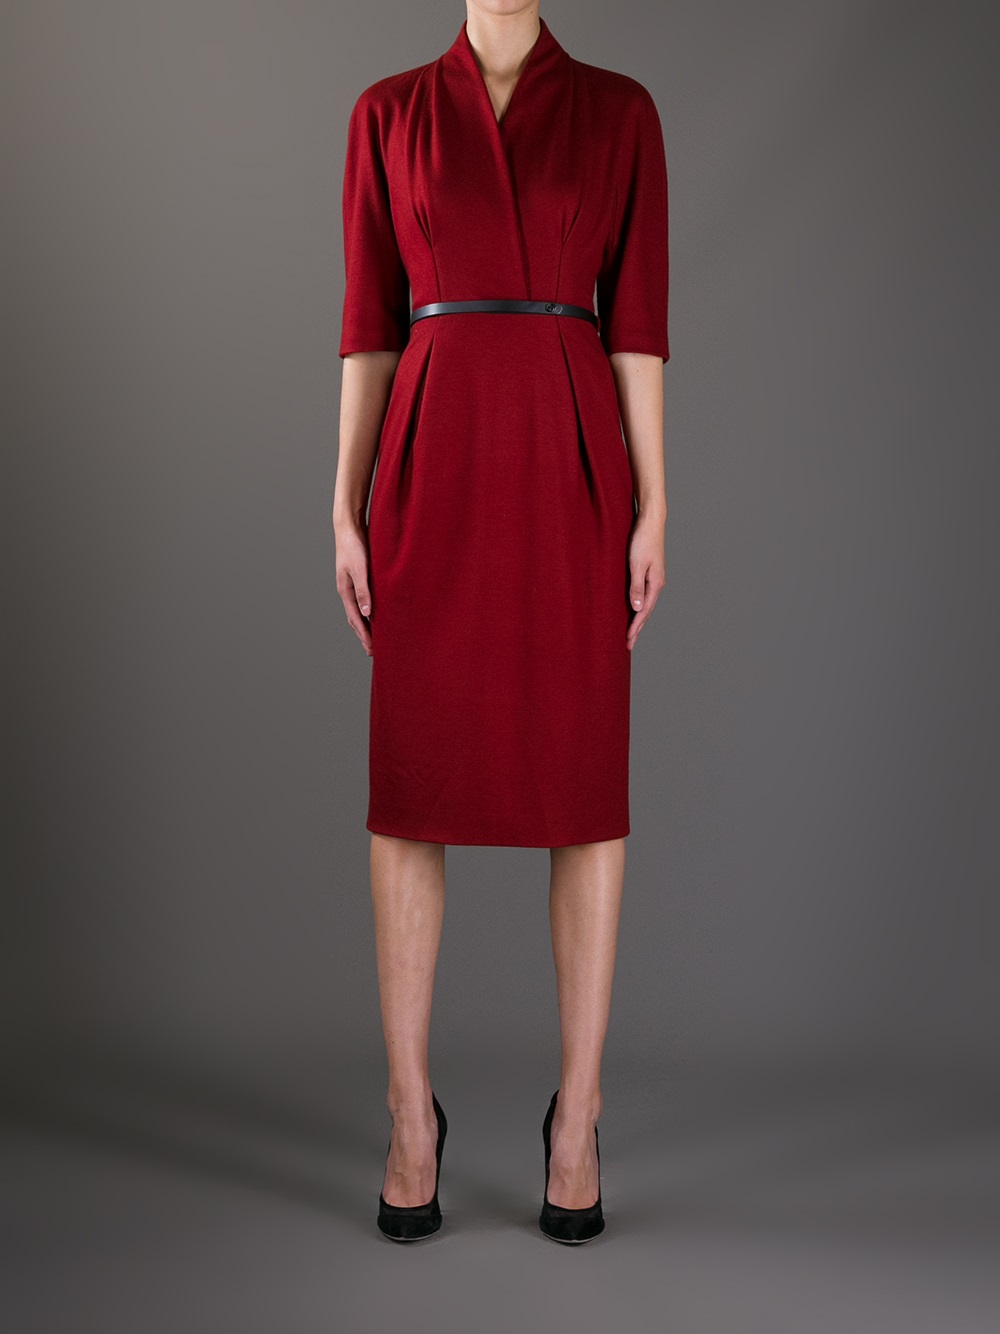 Lyst Gucci Belted Knee Length Dress In Red